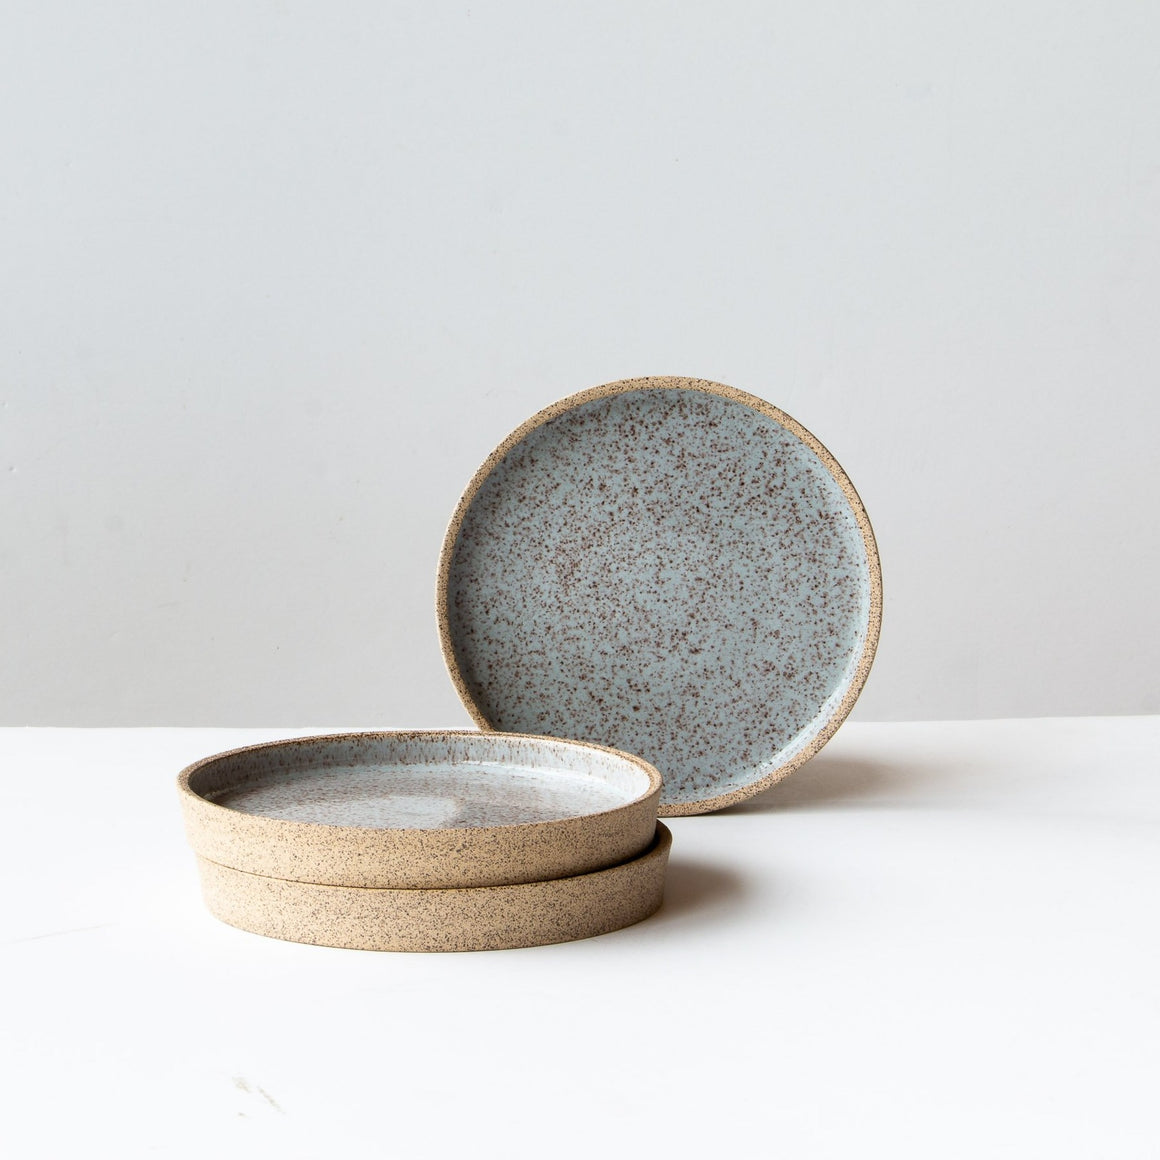 Front View - Small Speckled Stoneware Plate - Pale Blue Glaze - Sold by Chic & Basta